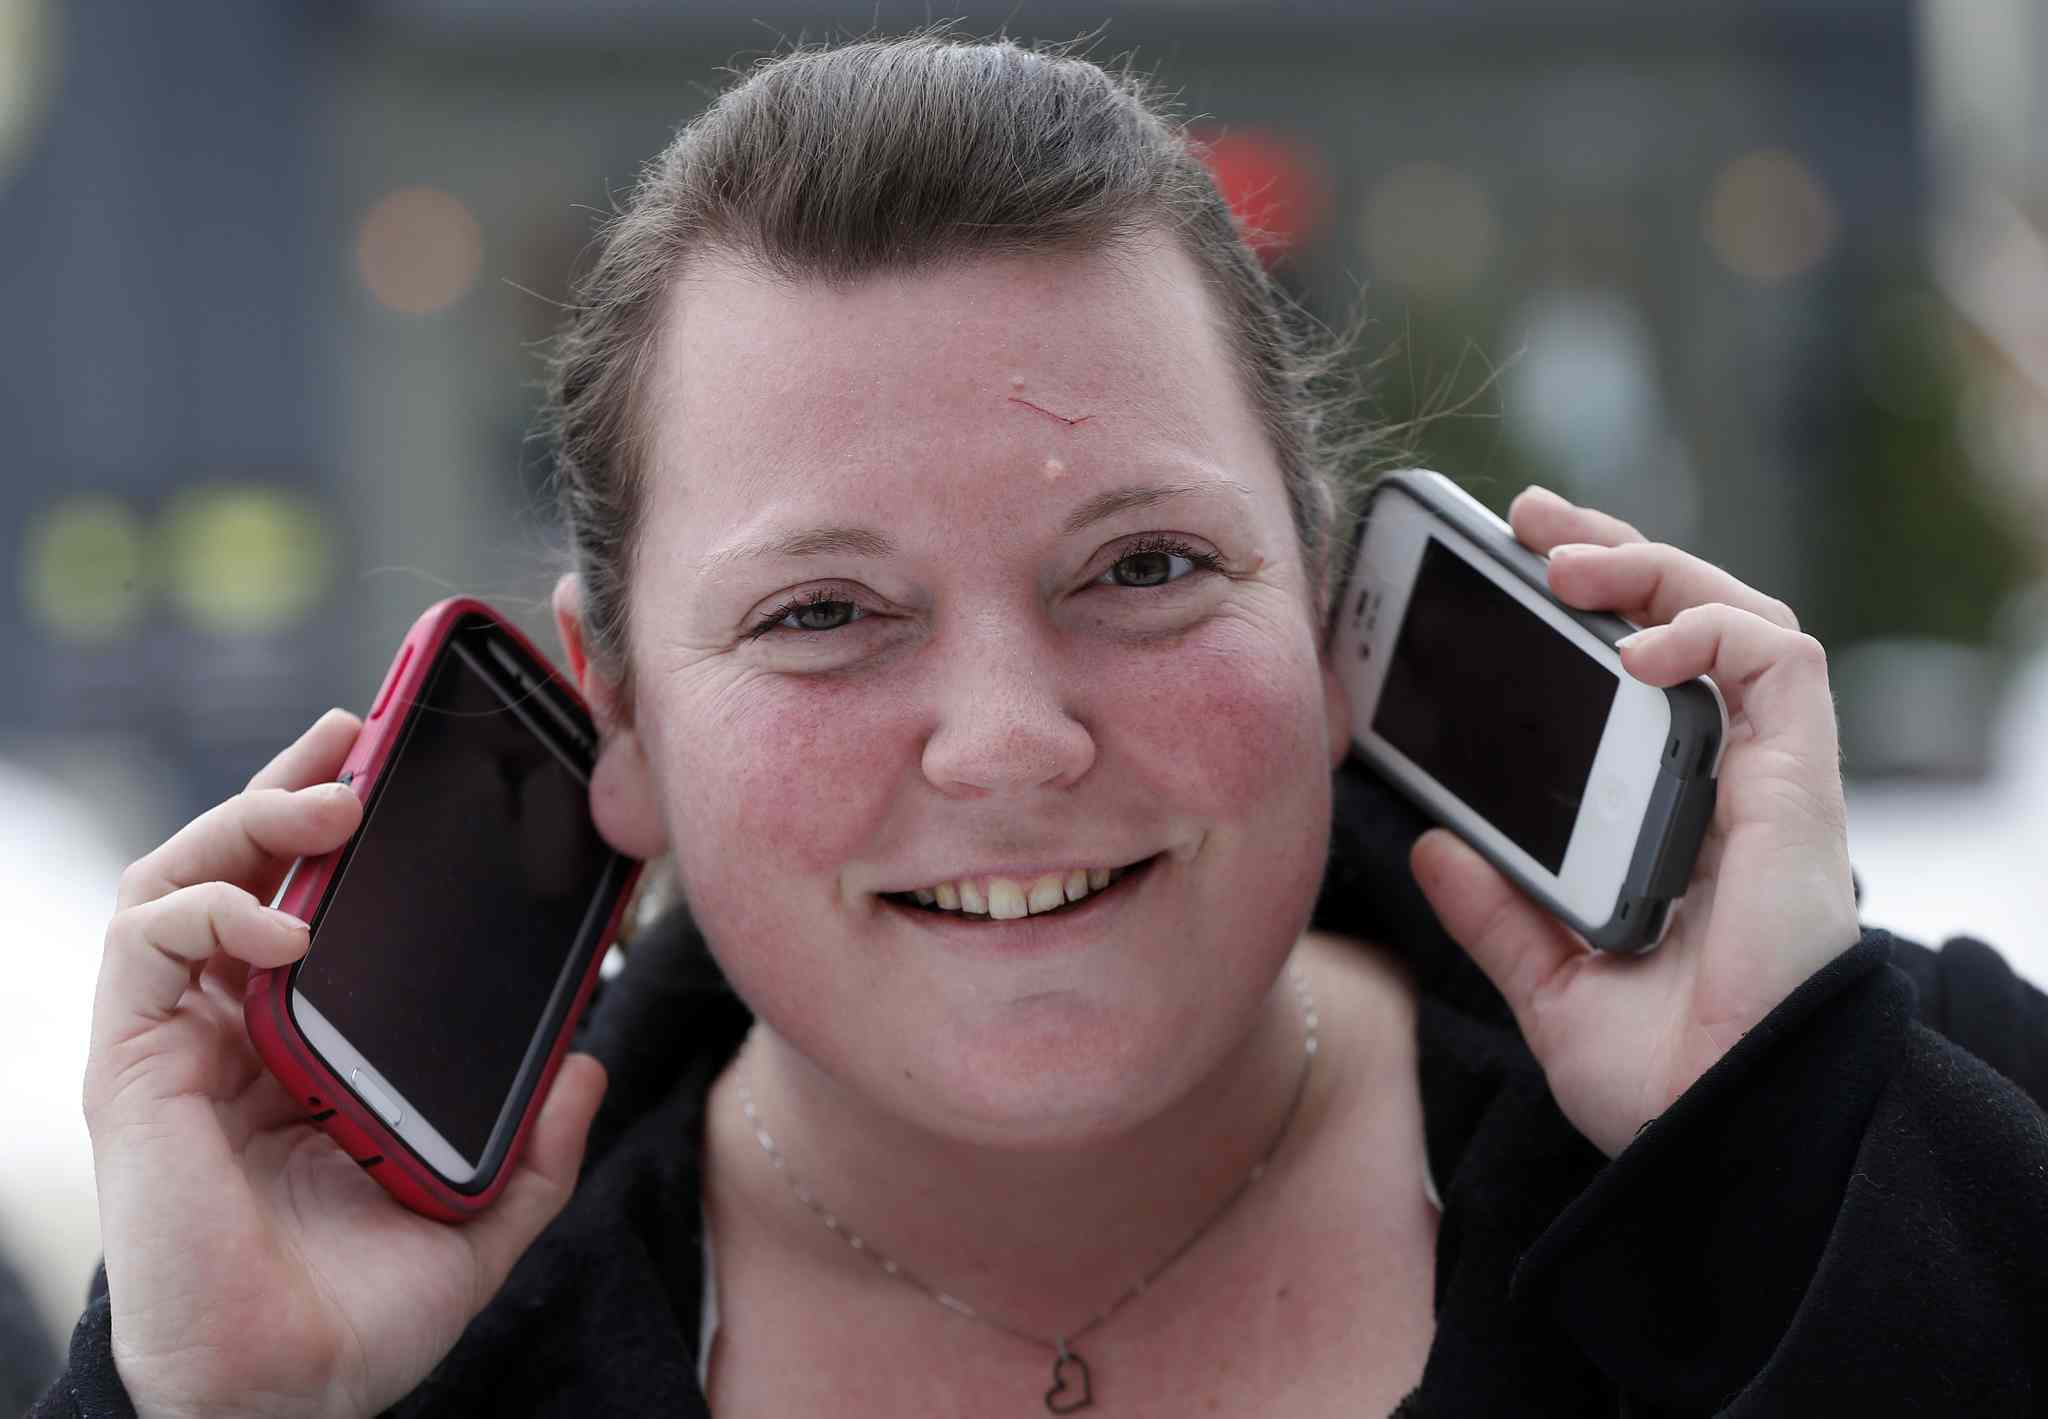 Marla Wojcik, 32, has two phones: one for work and one for personal use.  Nearly 50 per cent of Canadian mobile users say their device is on hand 24/7, according to a recent poll.